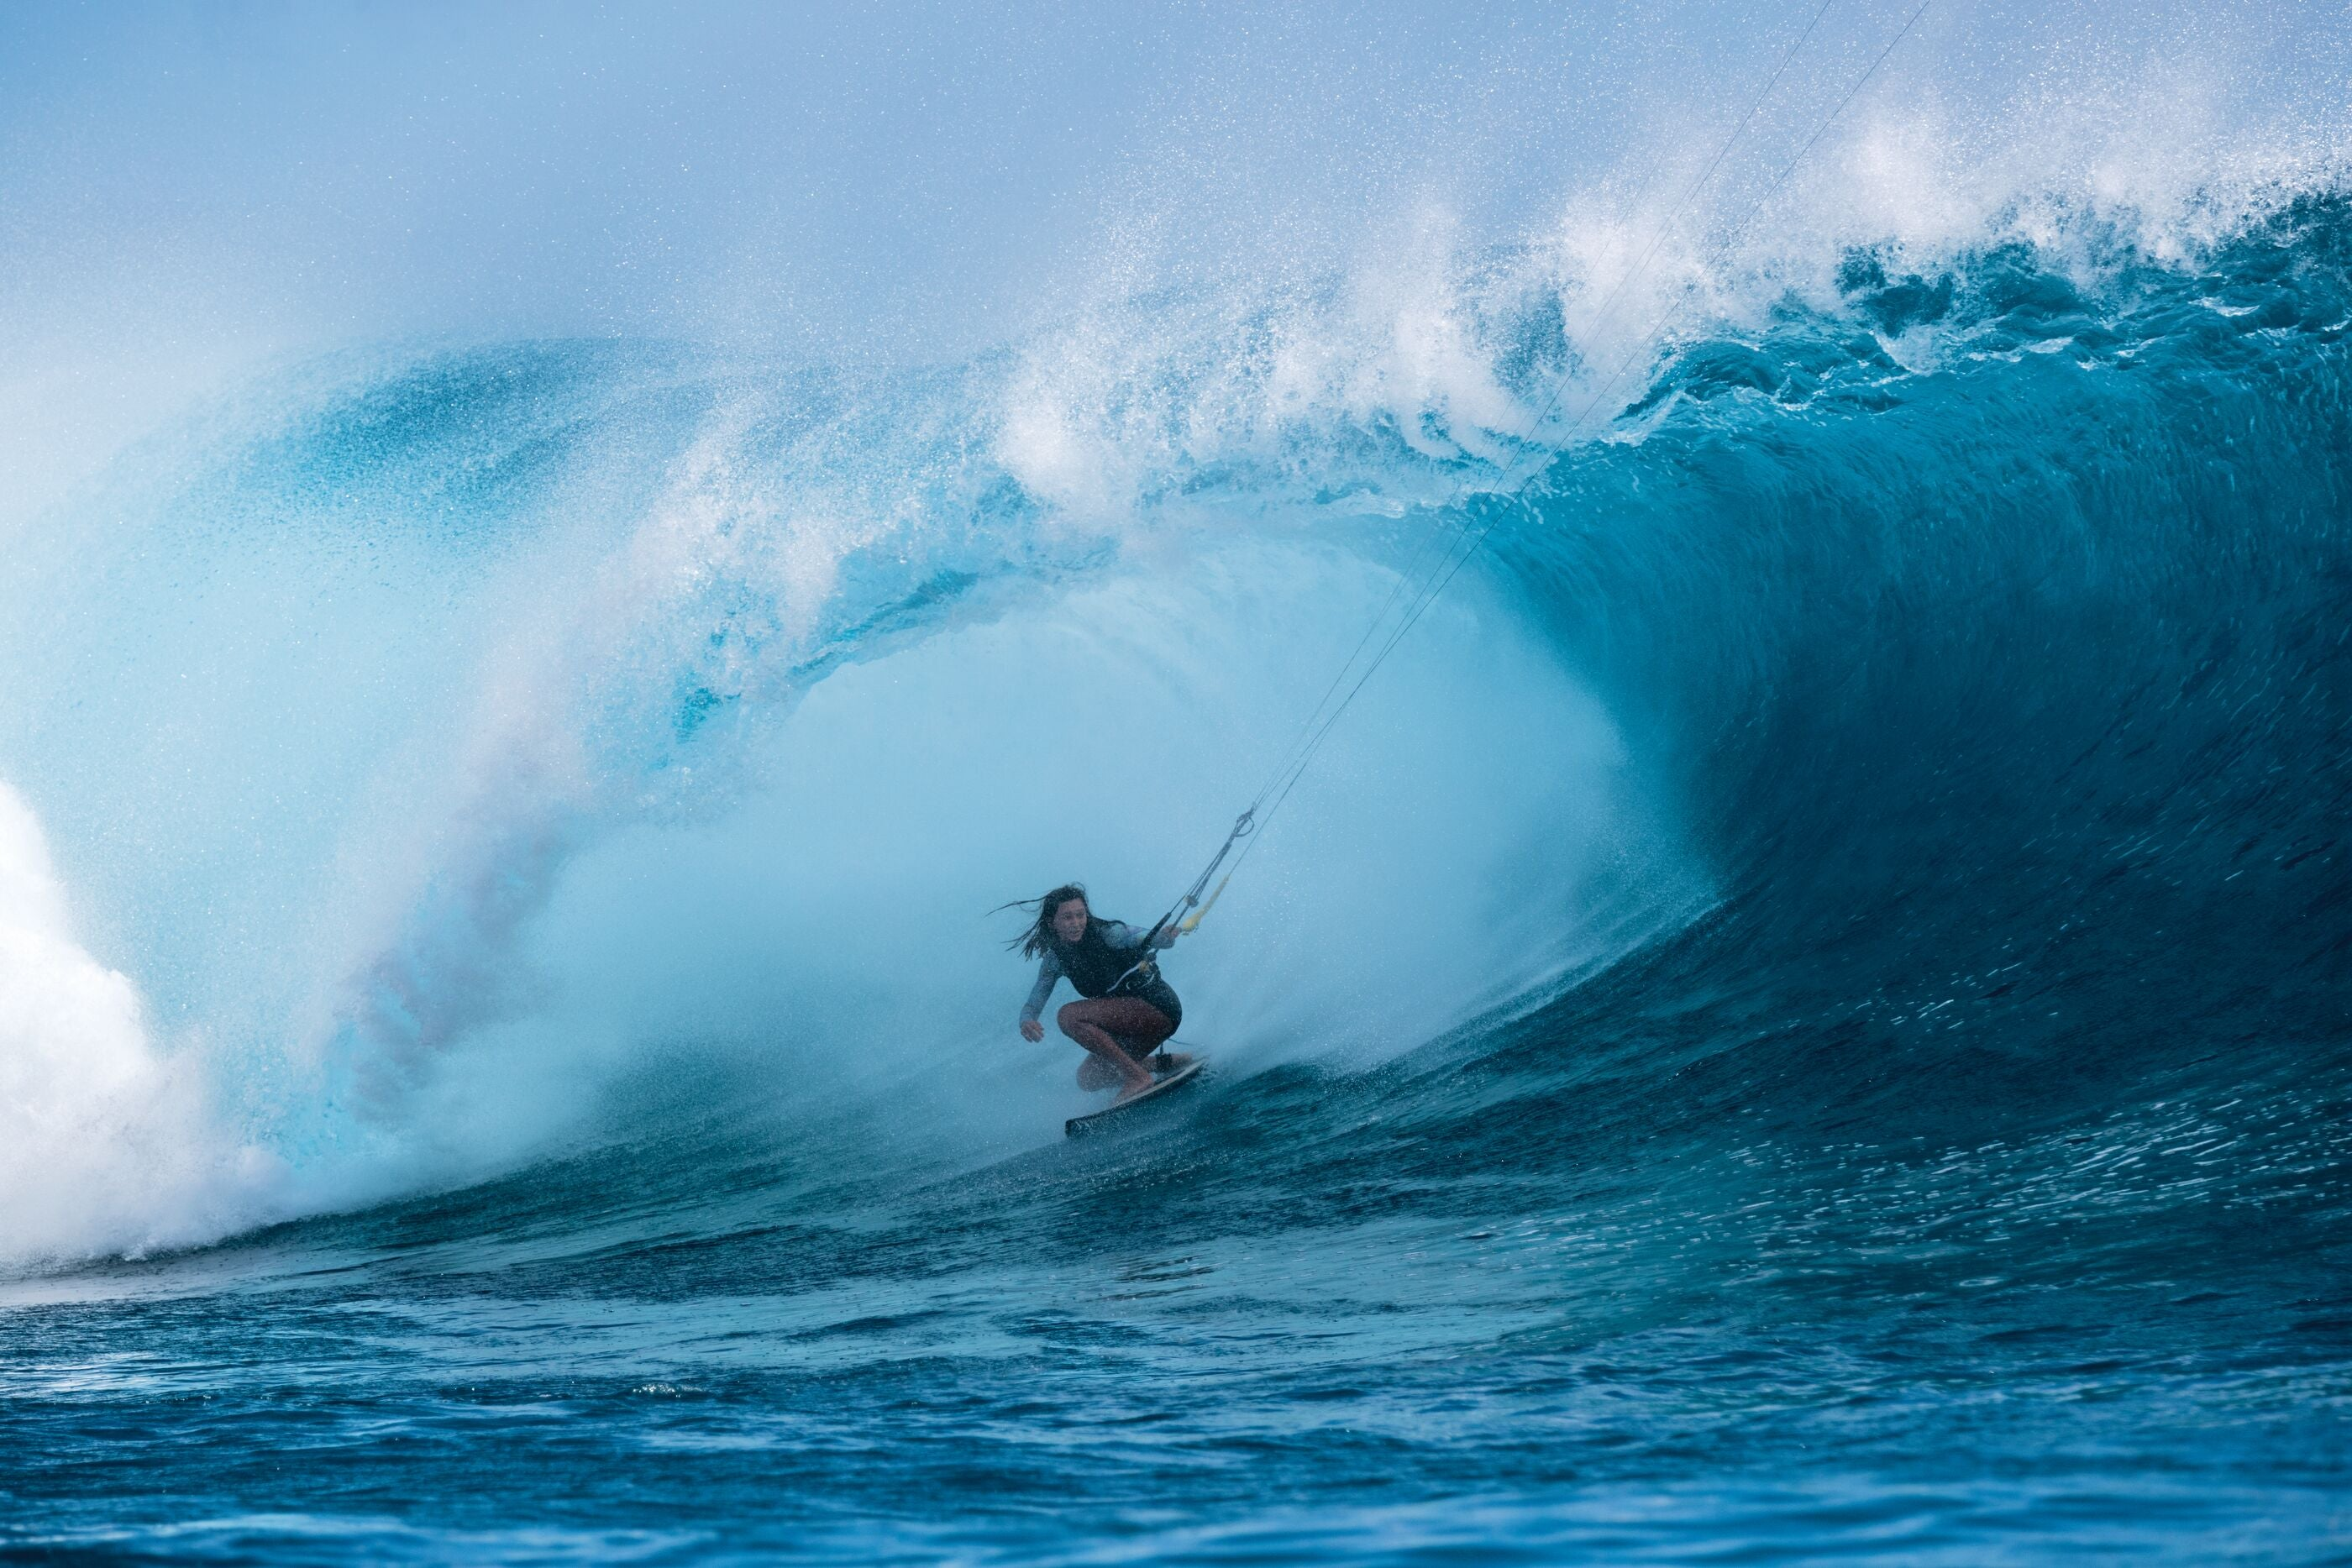 Moona Whyte pulls into a barrel.